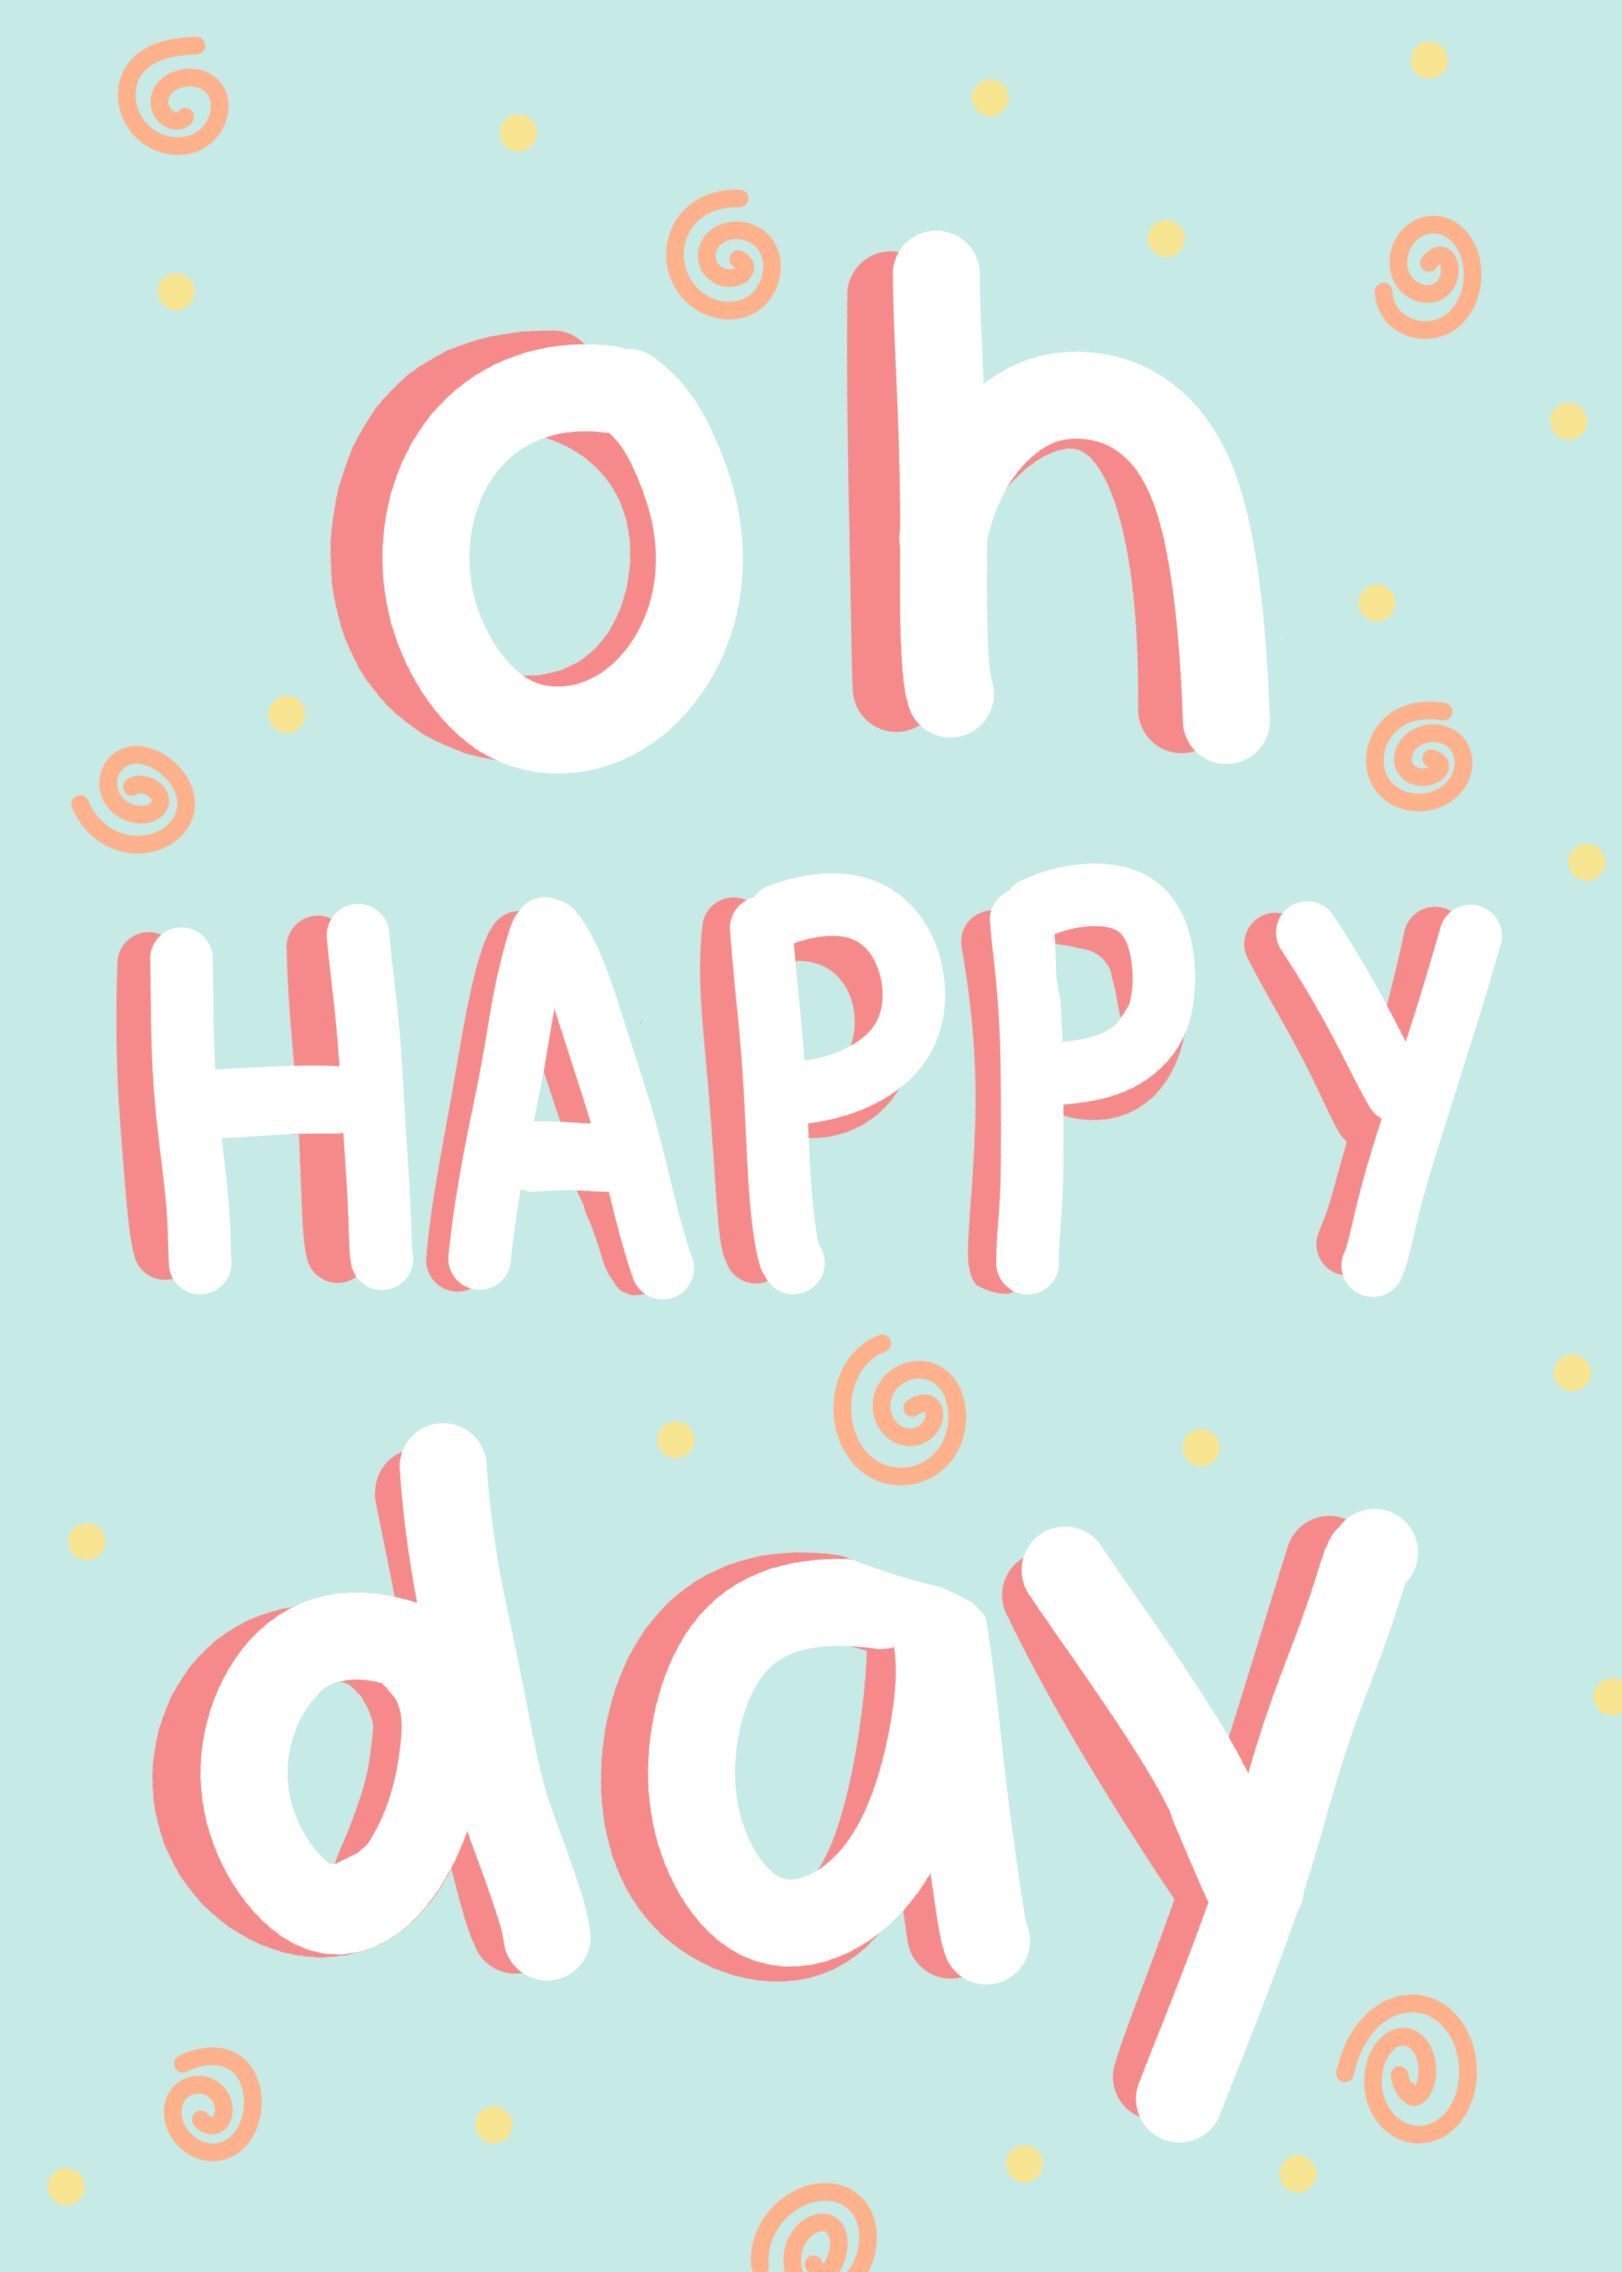 Oh Happy Day Quote Words Lyrics Blue Teal Yellow Aesthetic Tumblr